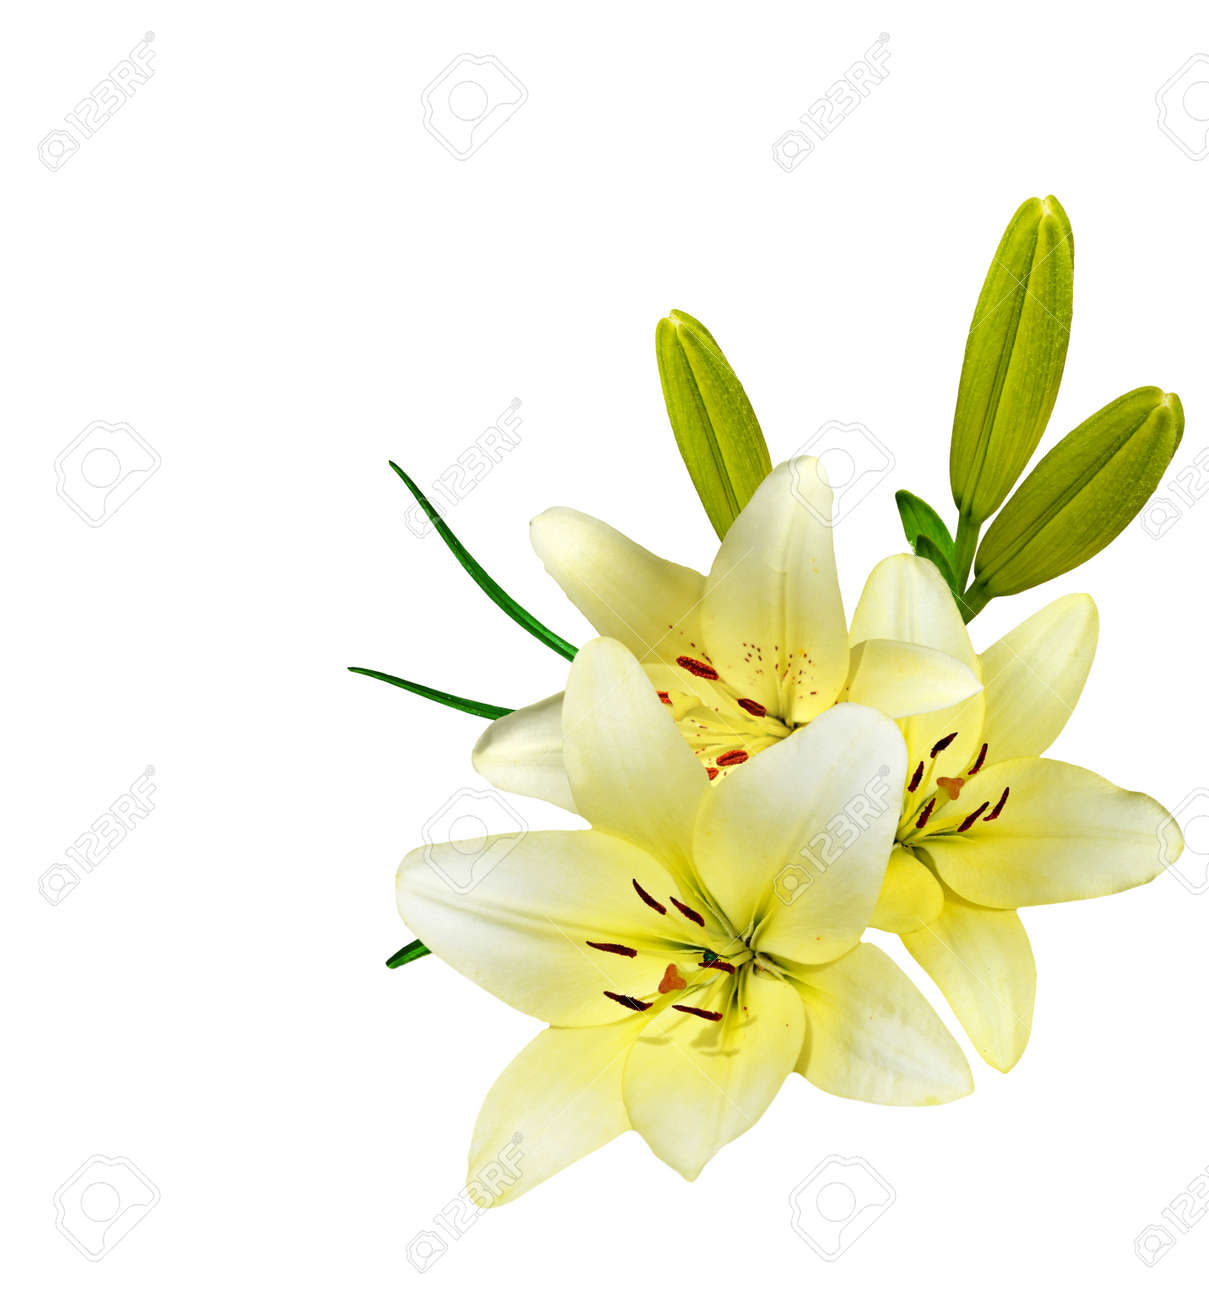 Flower lily isolated on white background delicate flower stock flower lily isolated on white background delicate flower stock photo 51665995 mightylinksfo